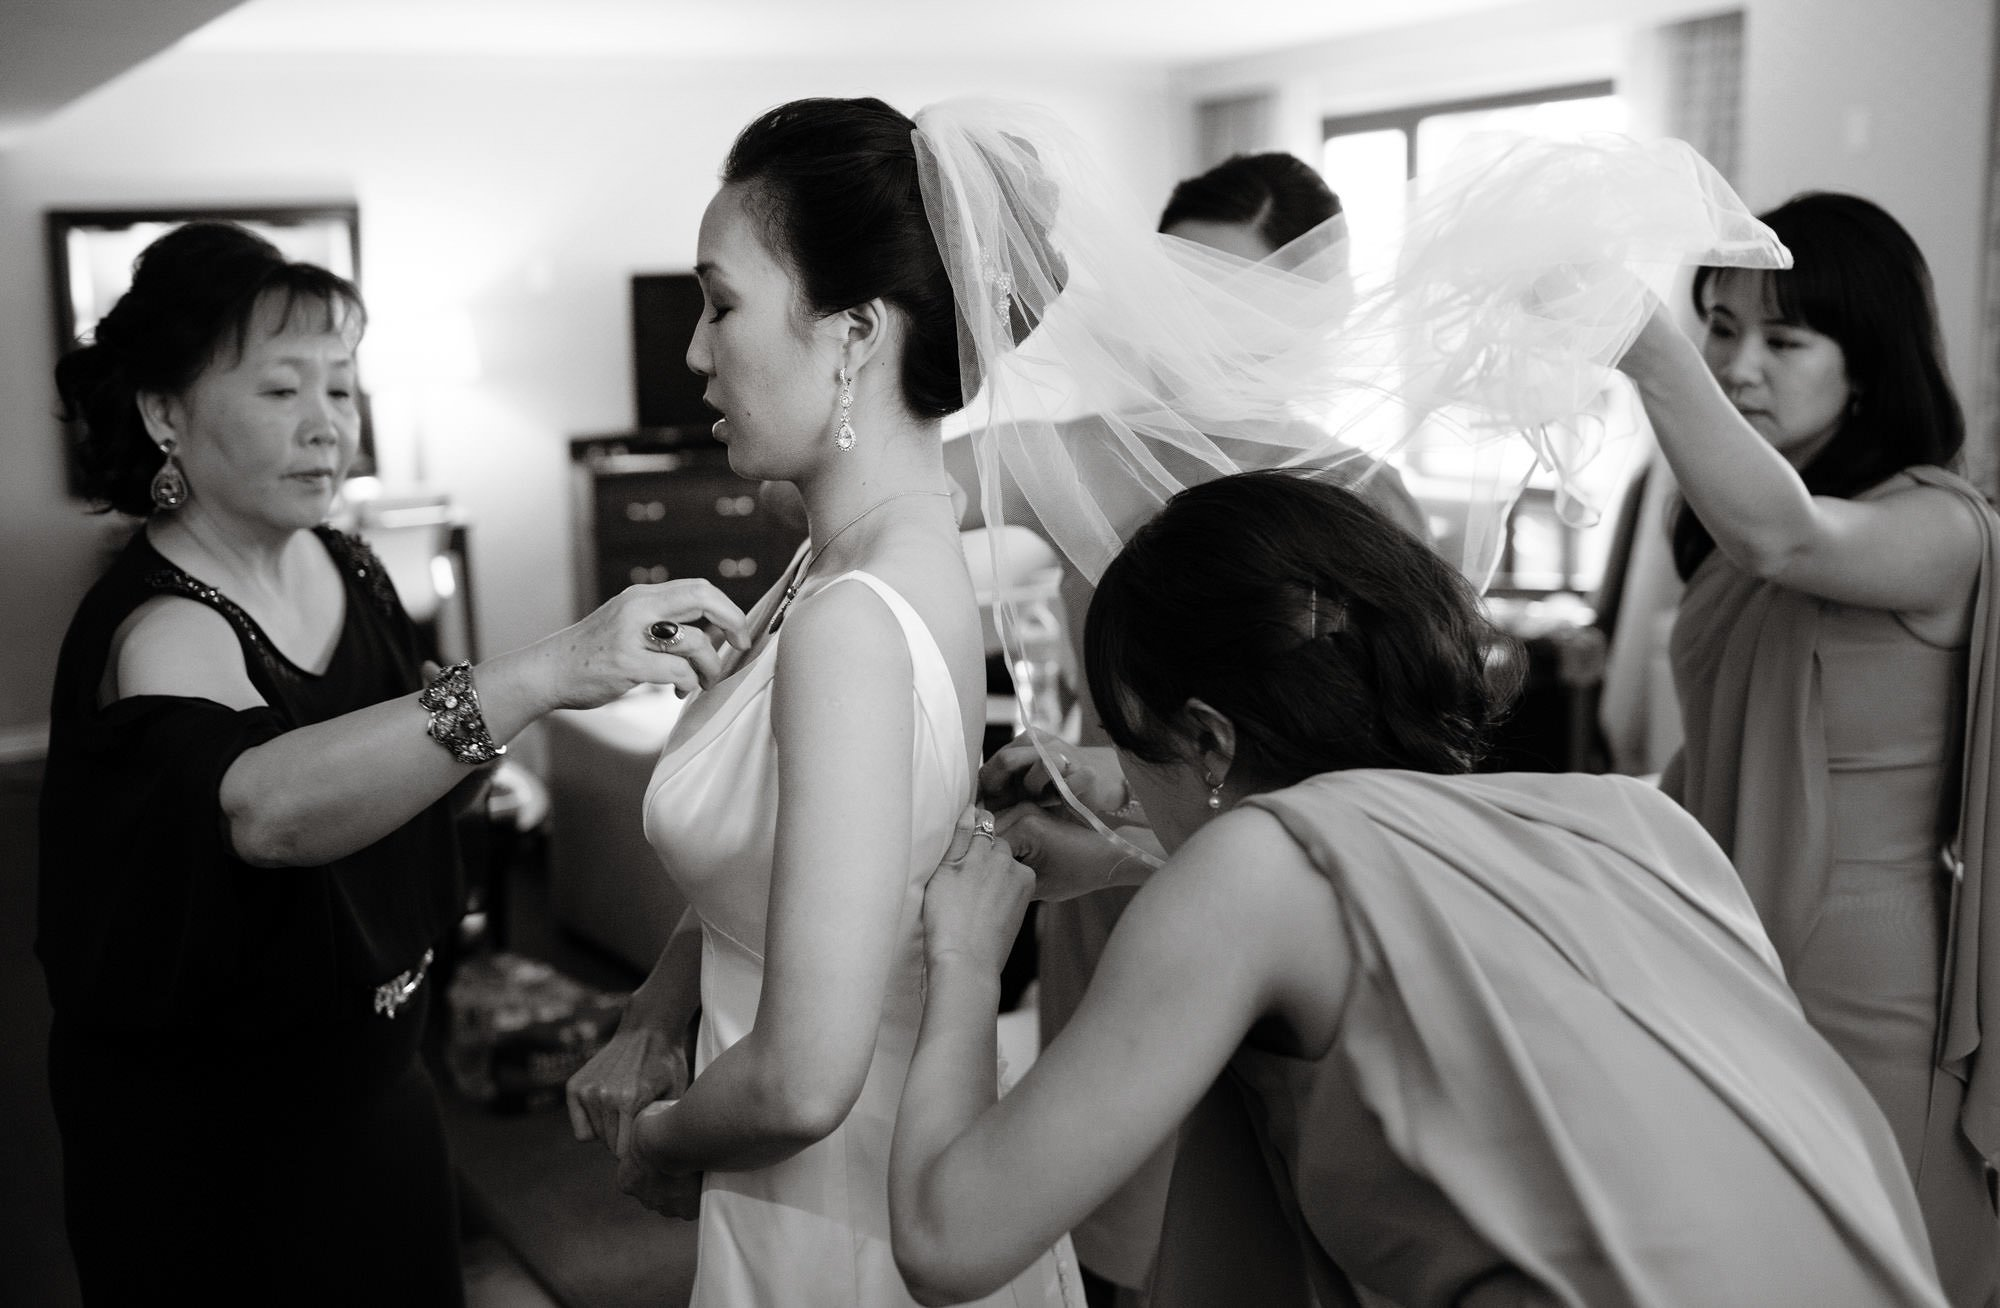 Bridesmaids help the bride put on her wedding dress before her Epic Yoga Studio wedding.